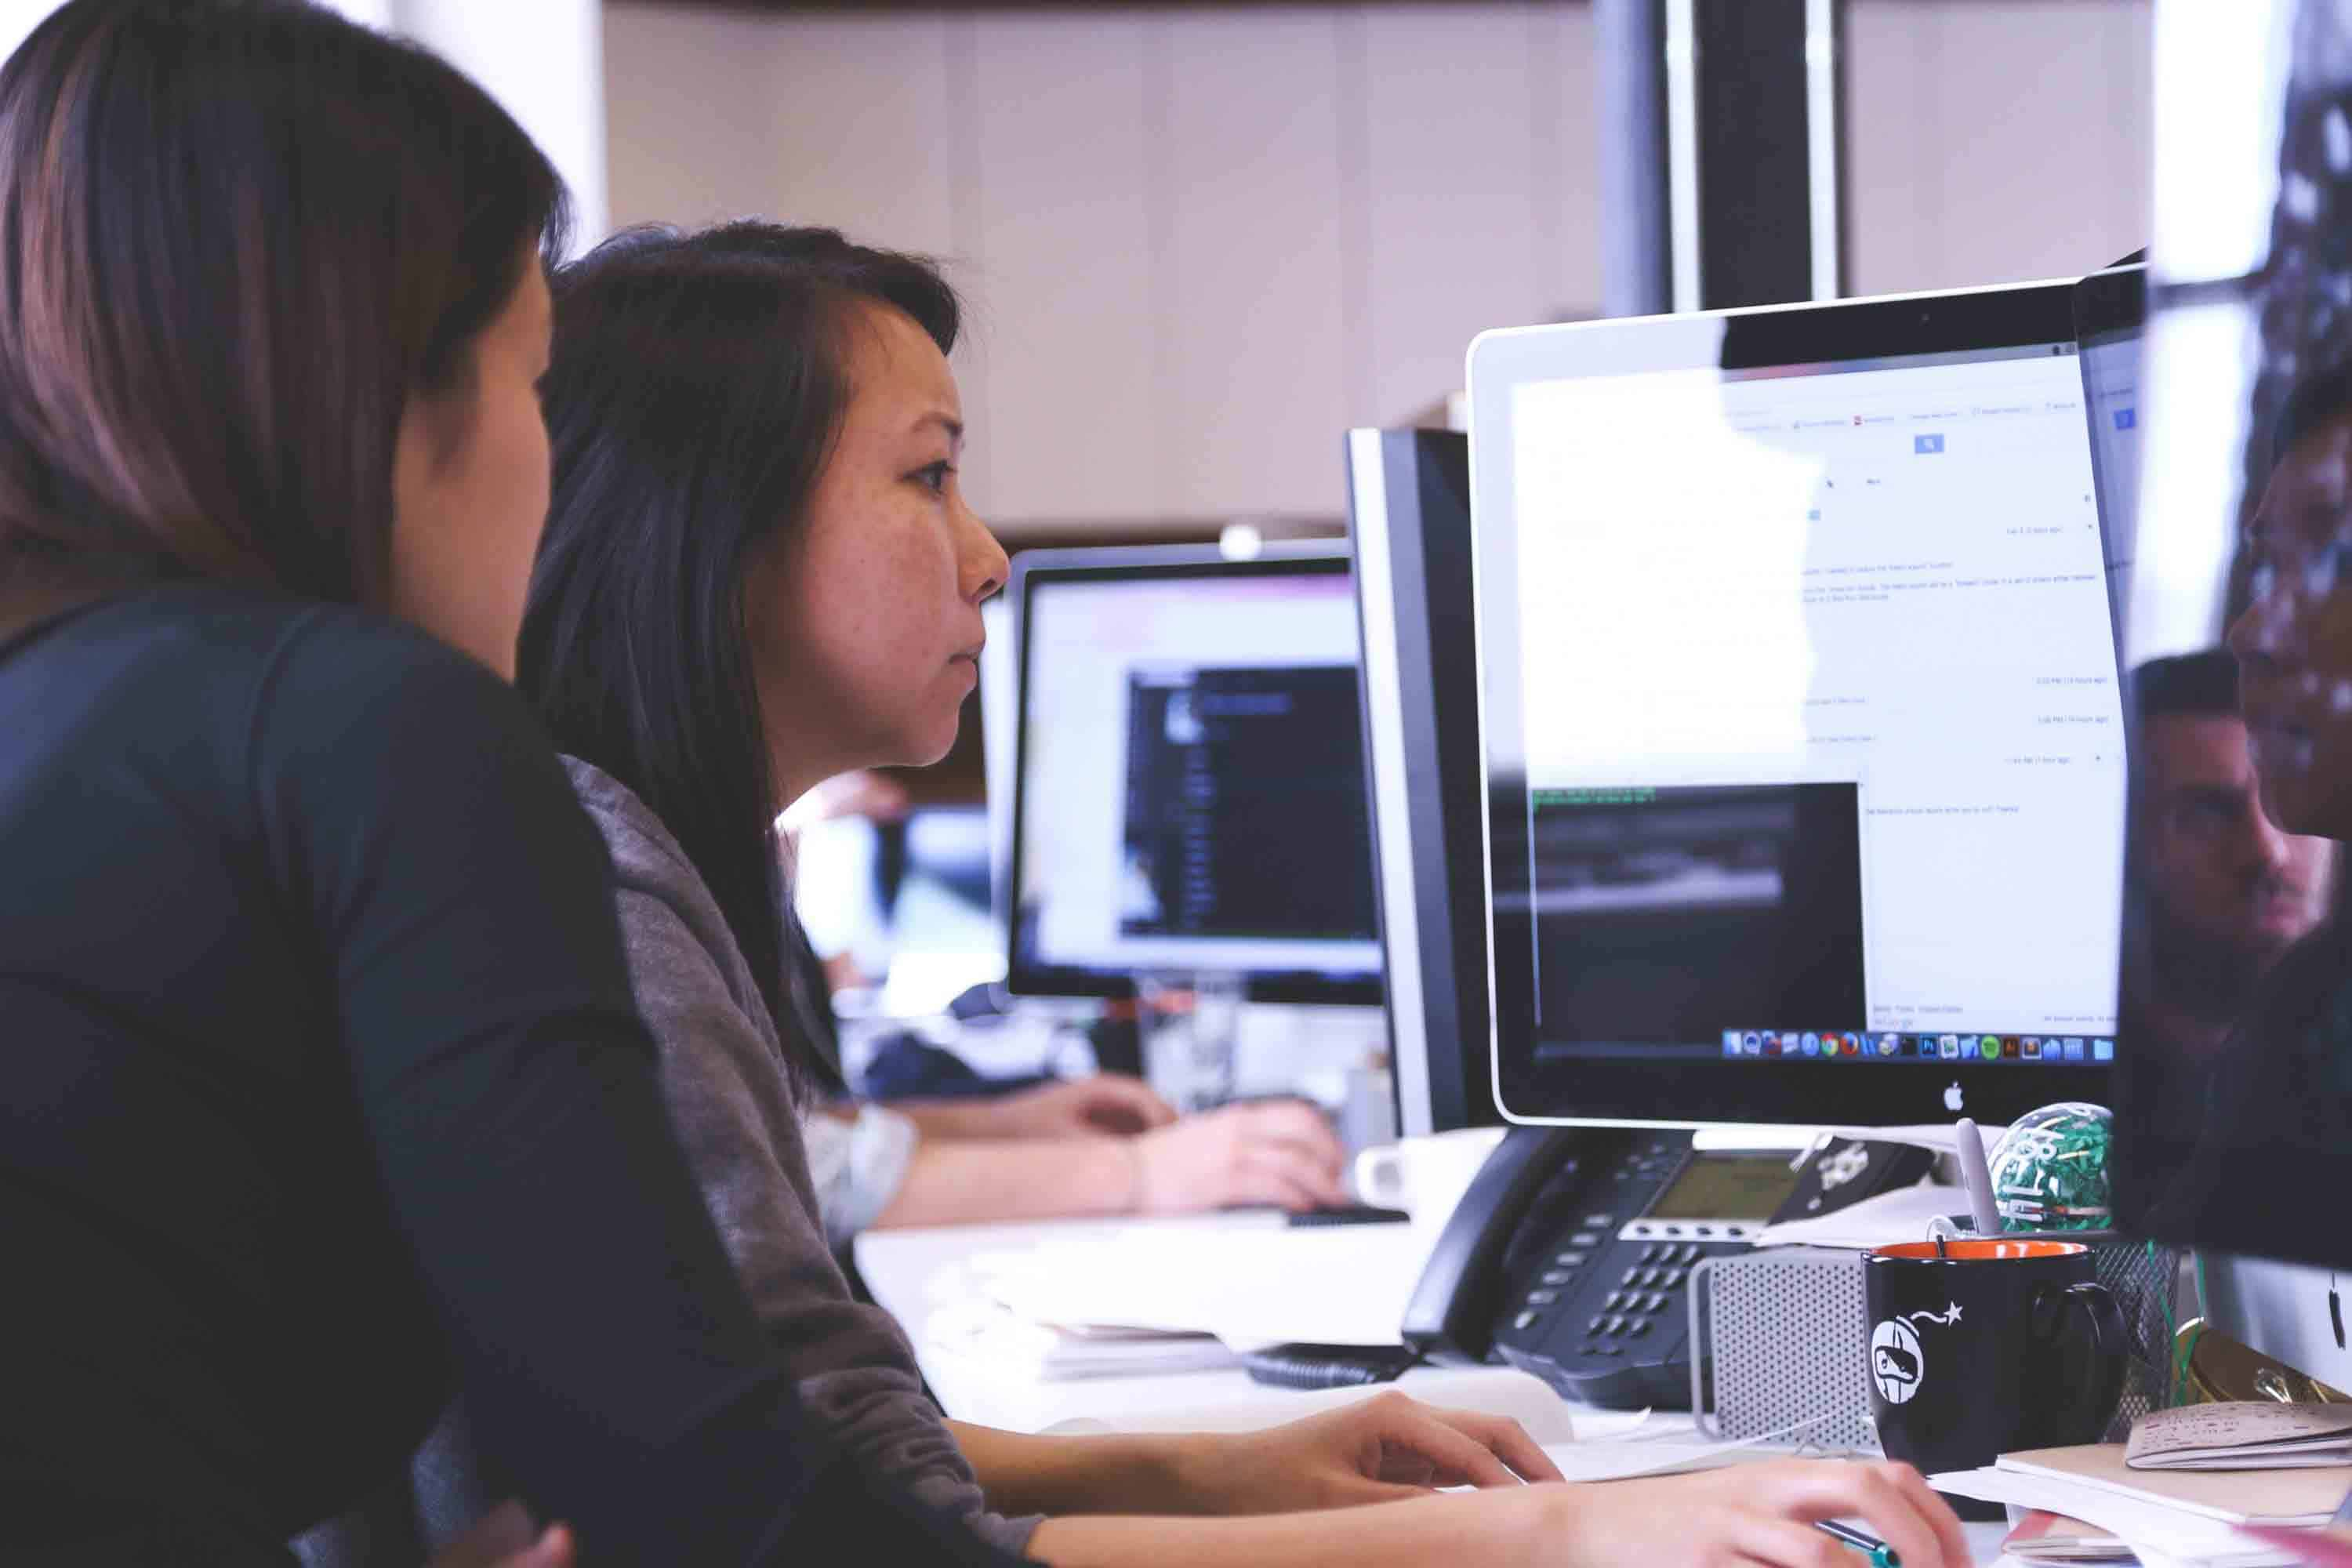 two women sitting in front of a computer screen using software to code